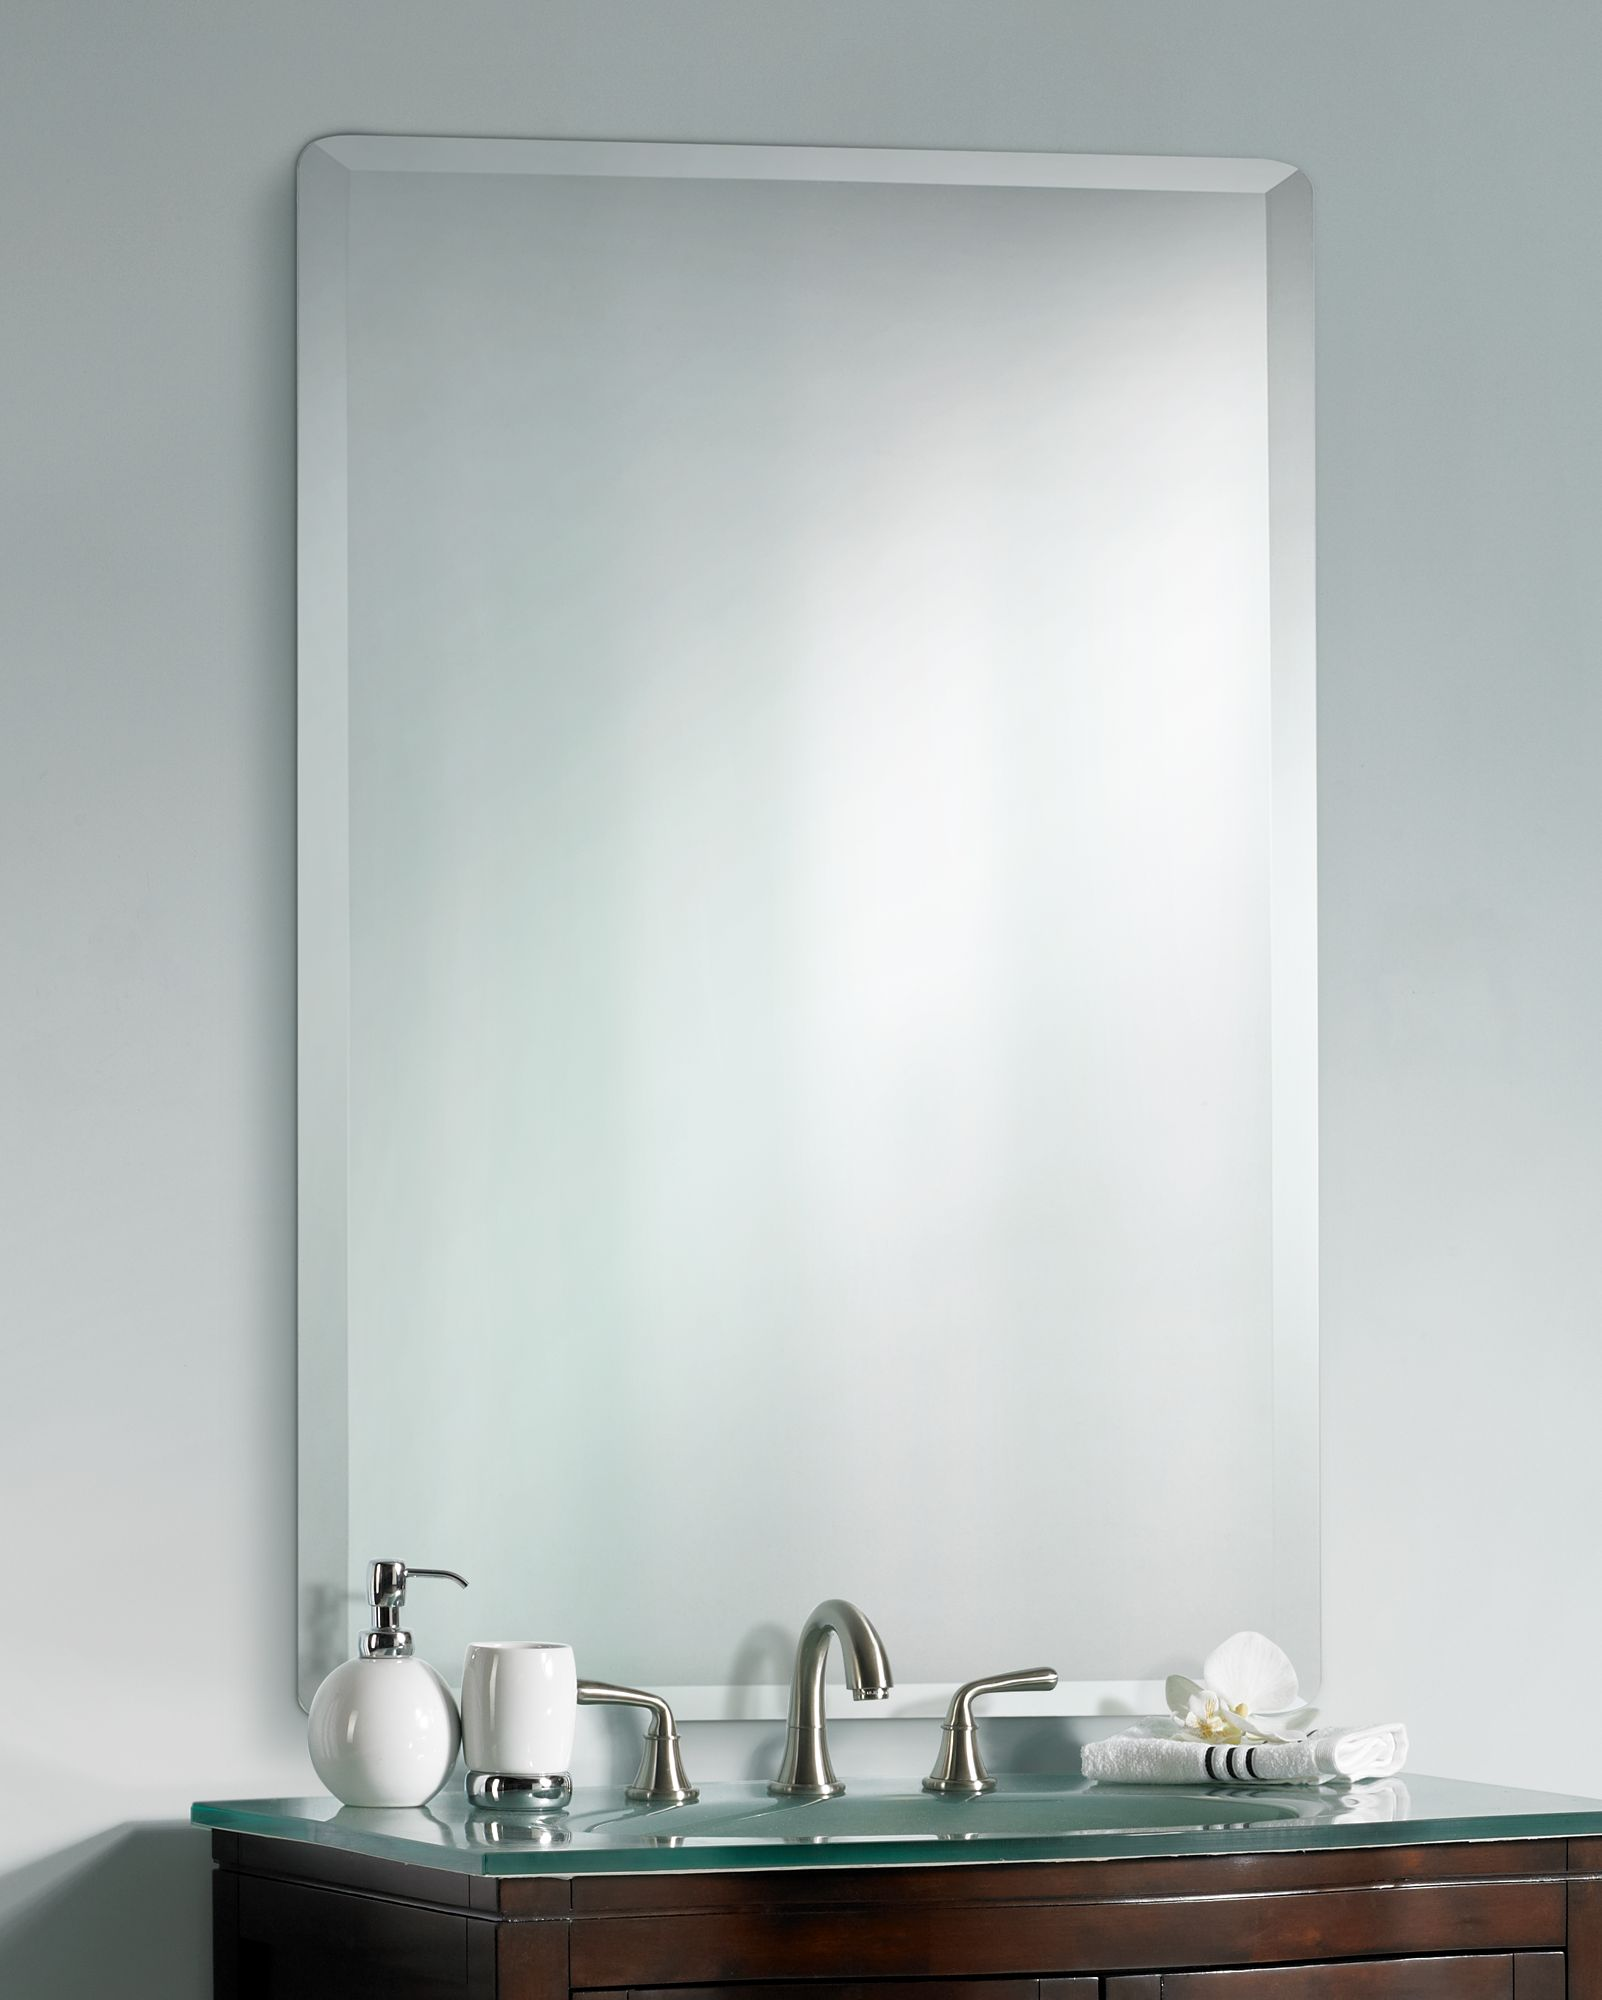 Bathroom Mirrors Vanity Designs For Bath And Dressing Areas